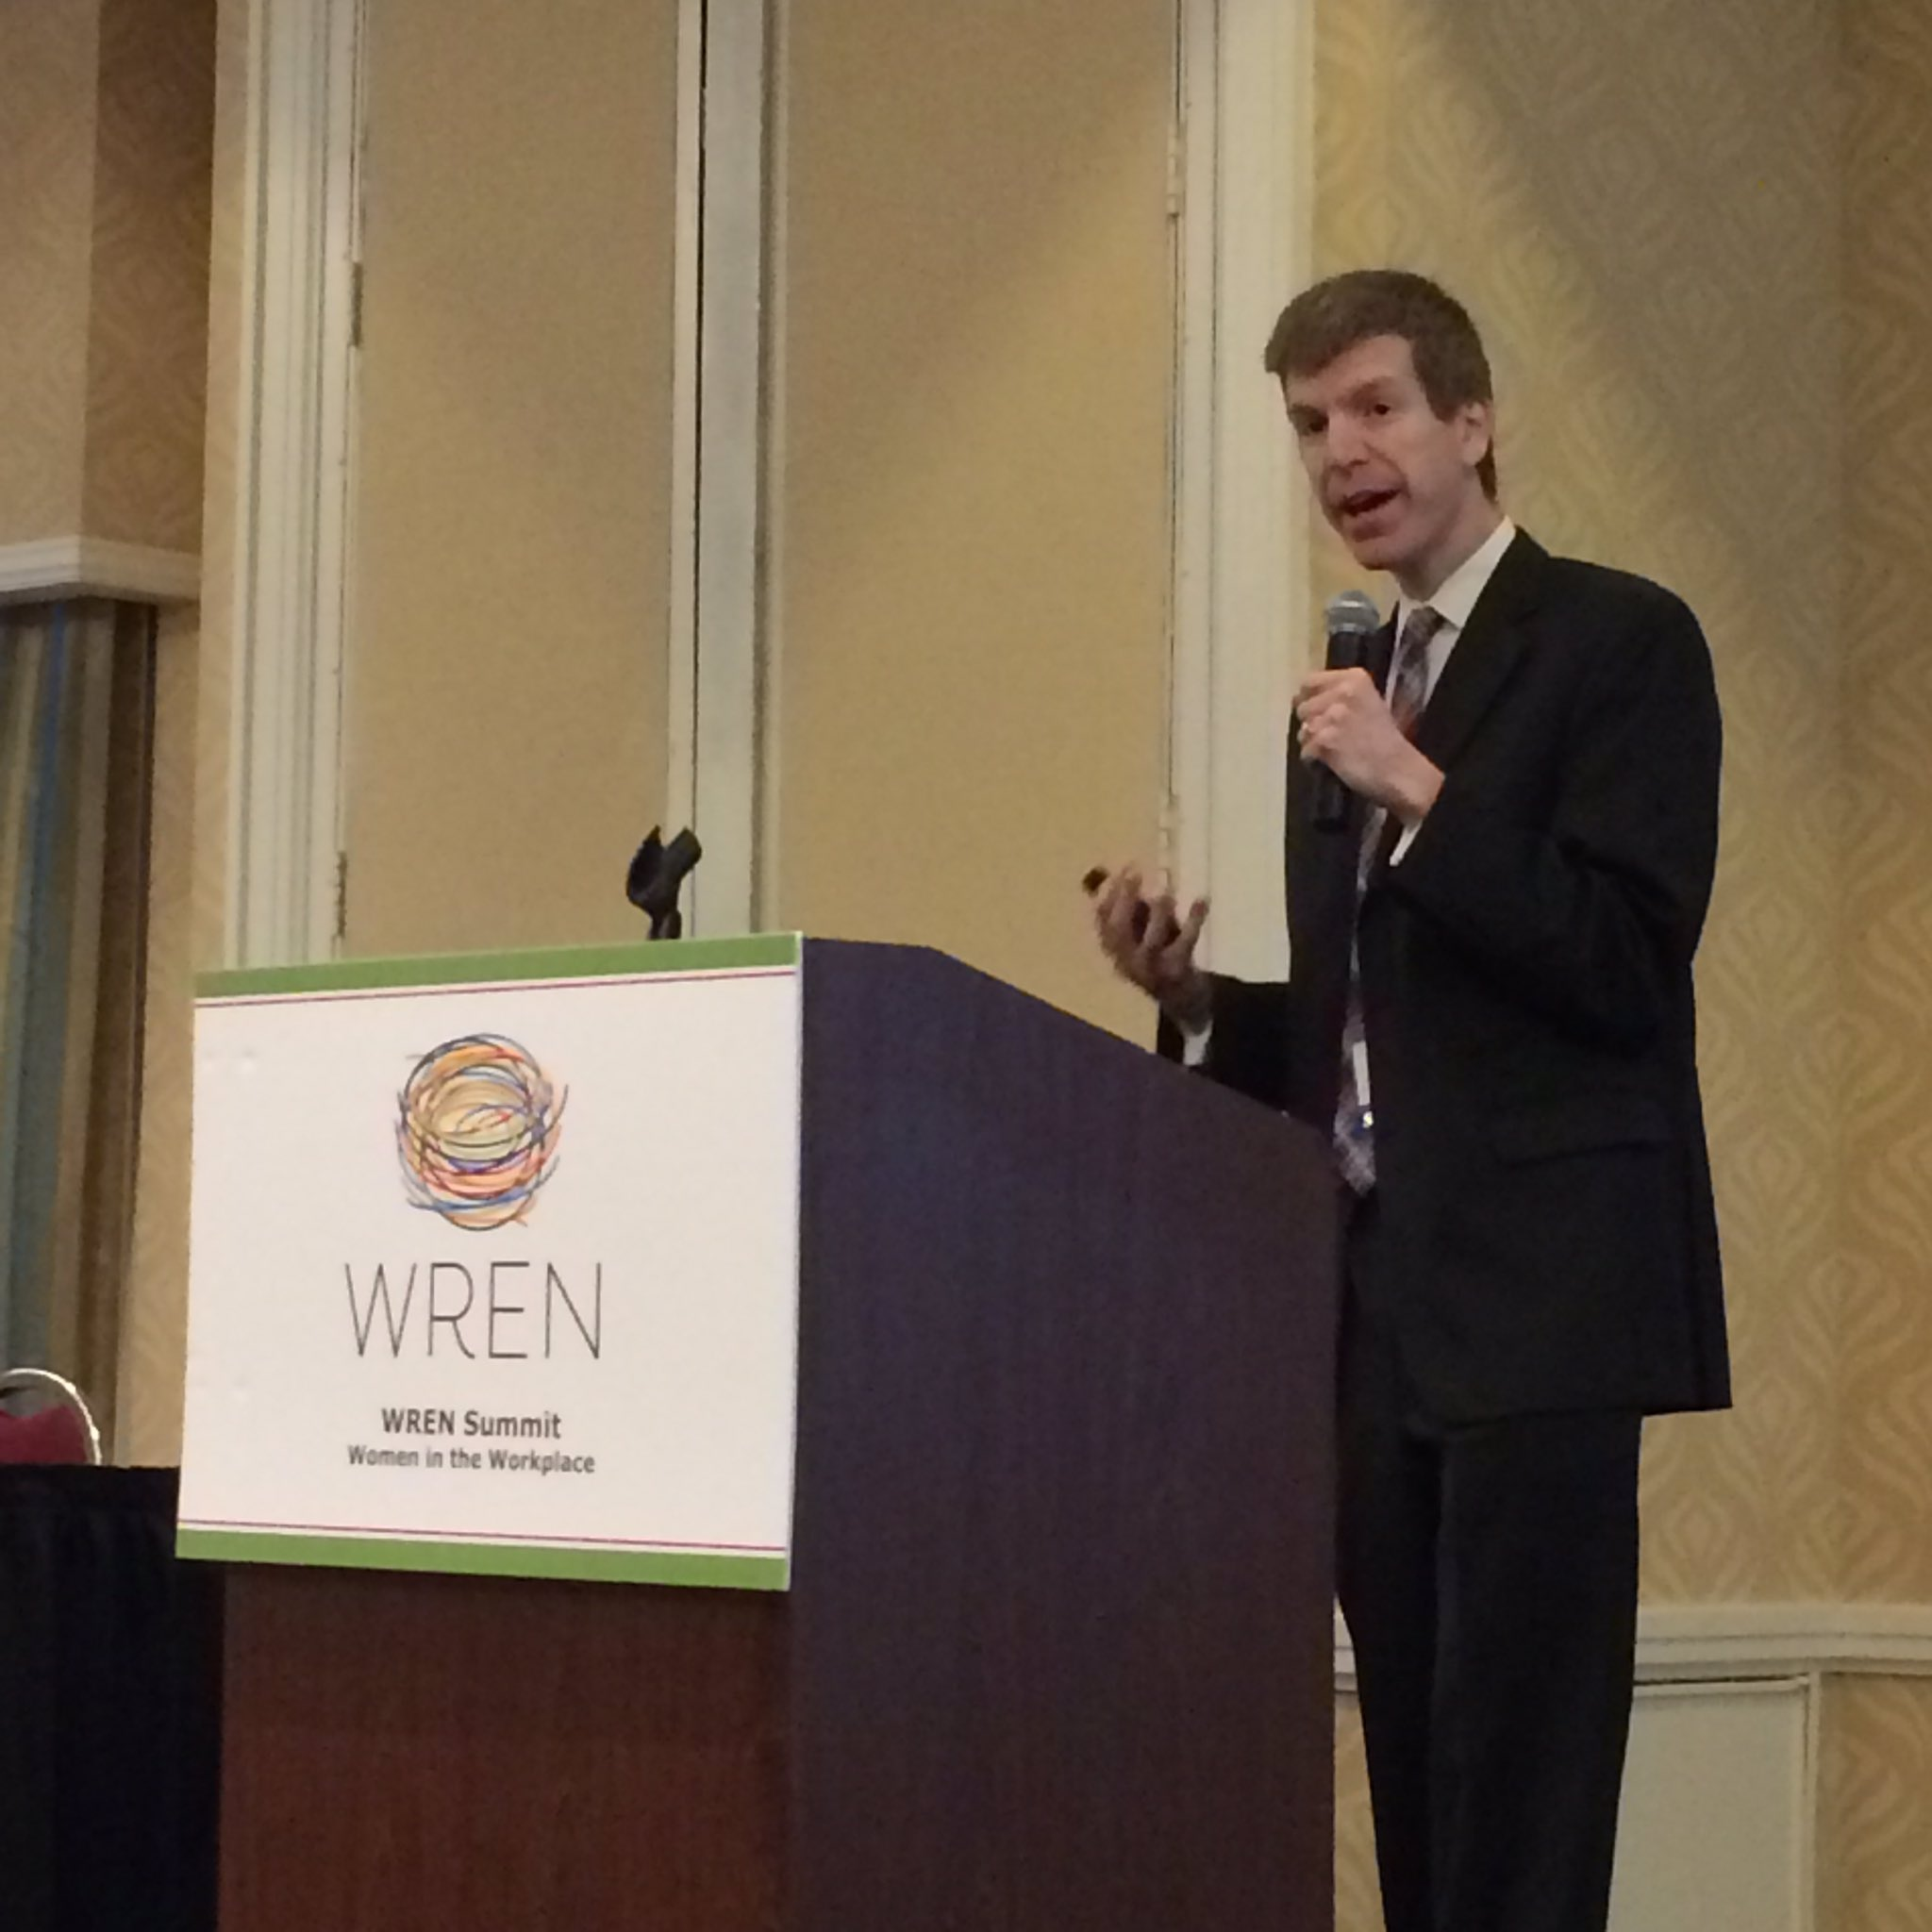 USC economist Dr. Joseph Von Nessen: data show #women of SC more highly educated than men, yet workforce participation, pay lags #WRENSummit https://t.co/MhiliE3omt